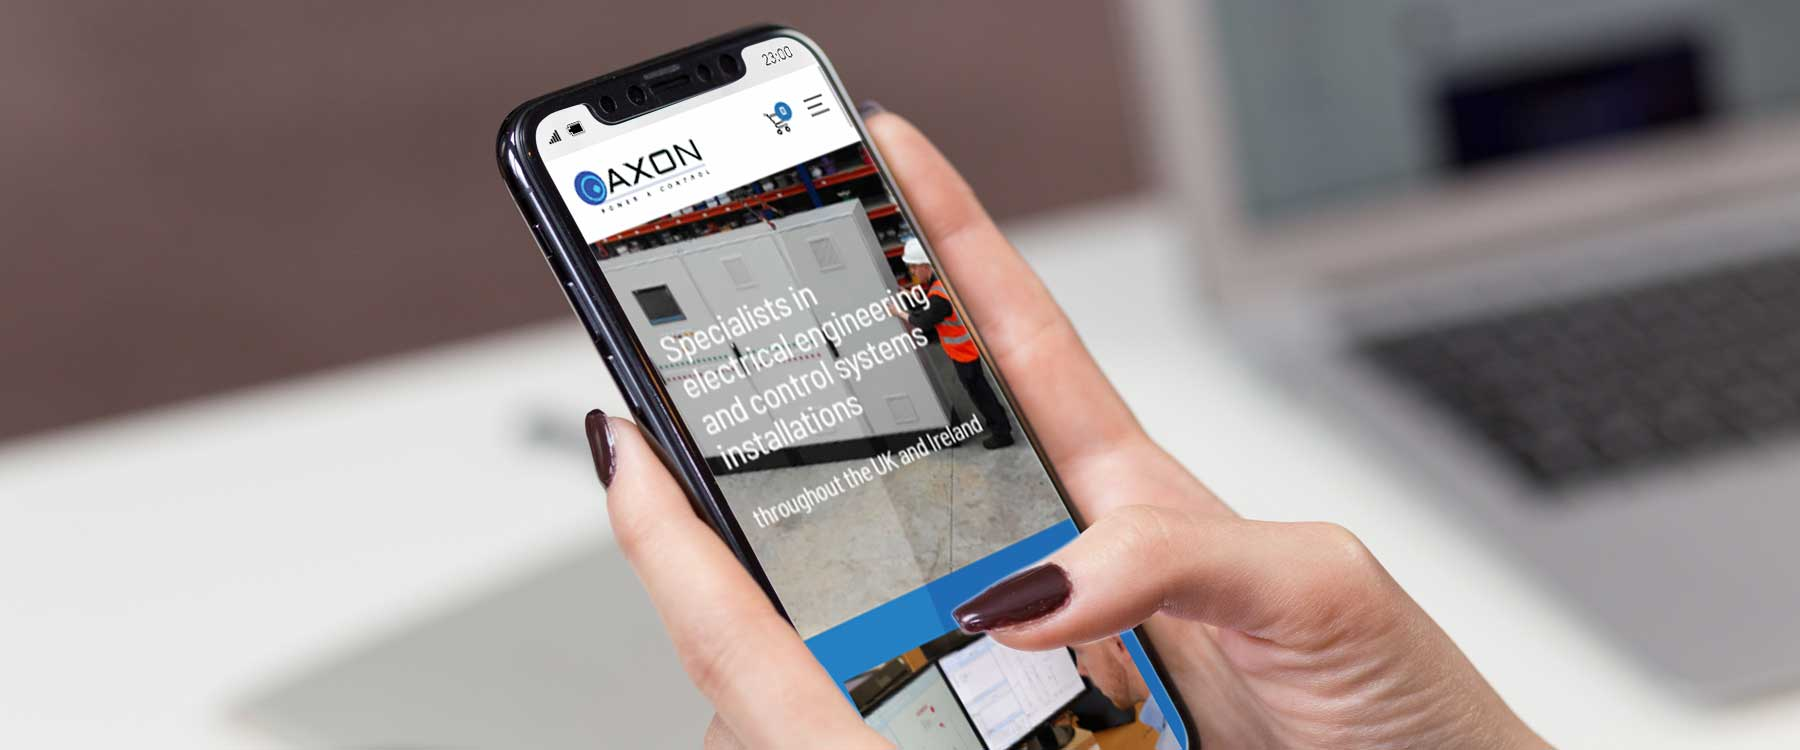 Axon Power & Control Launch New Online Shop for Spare Parts Image